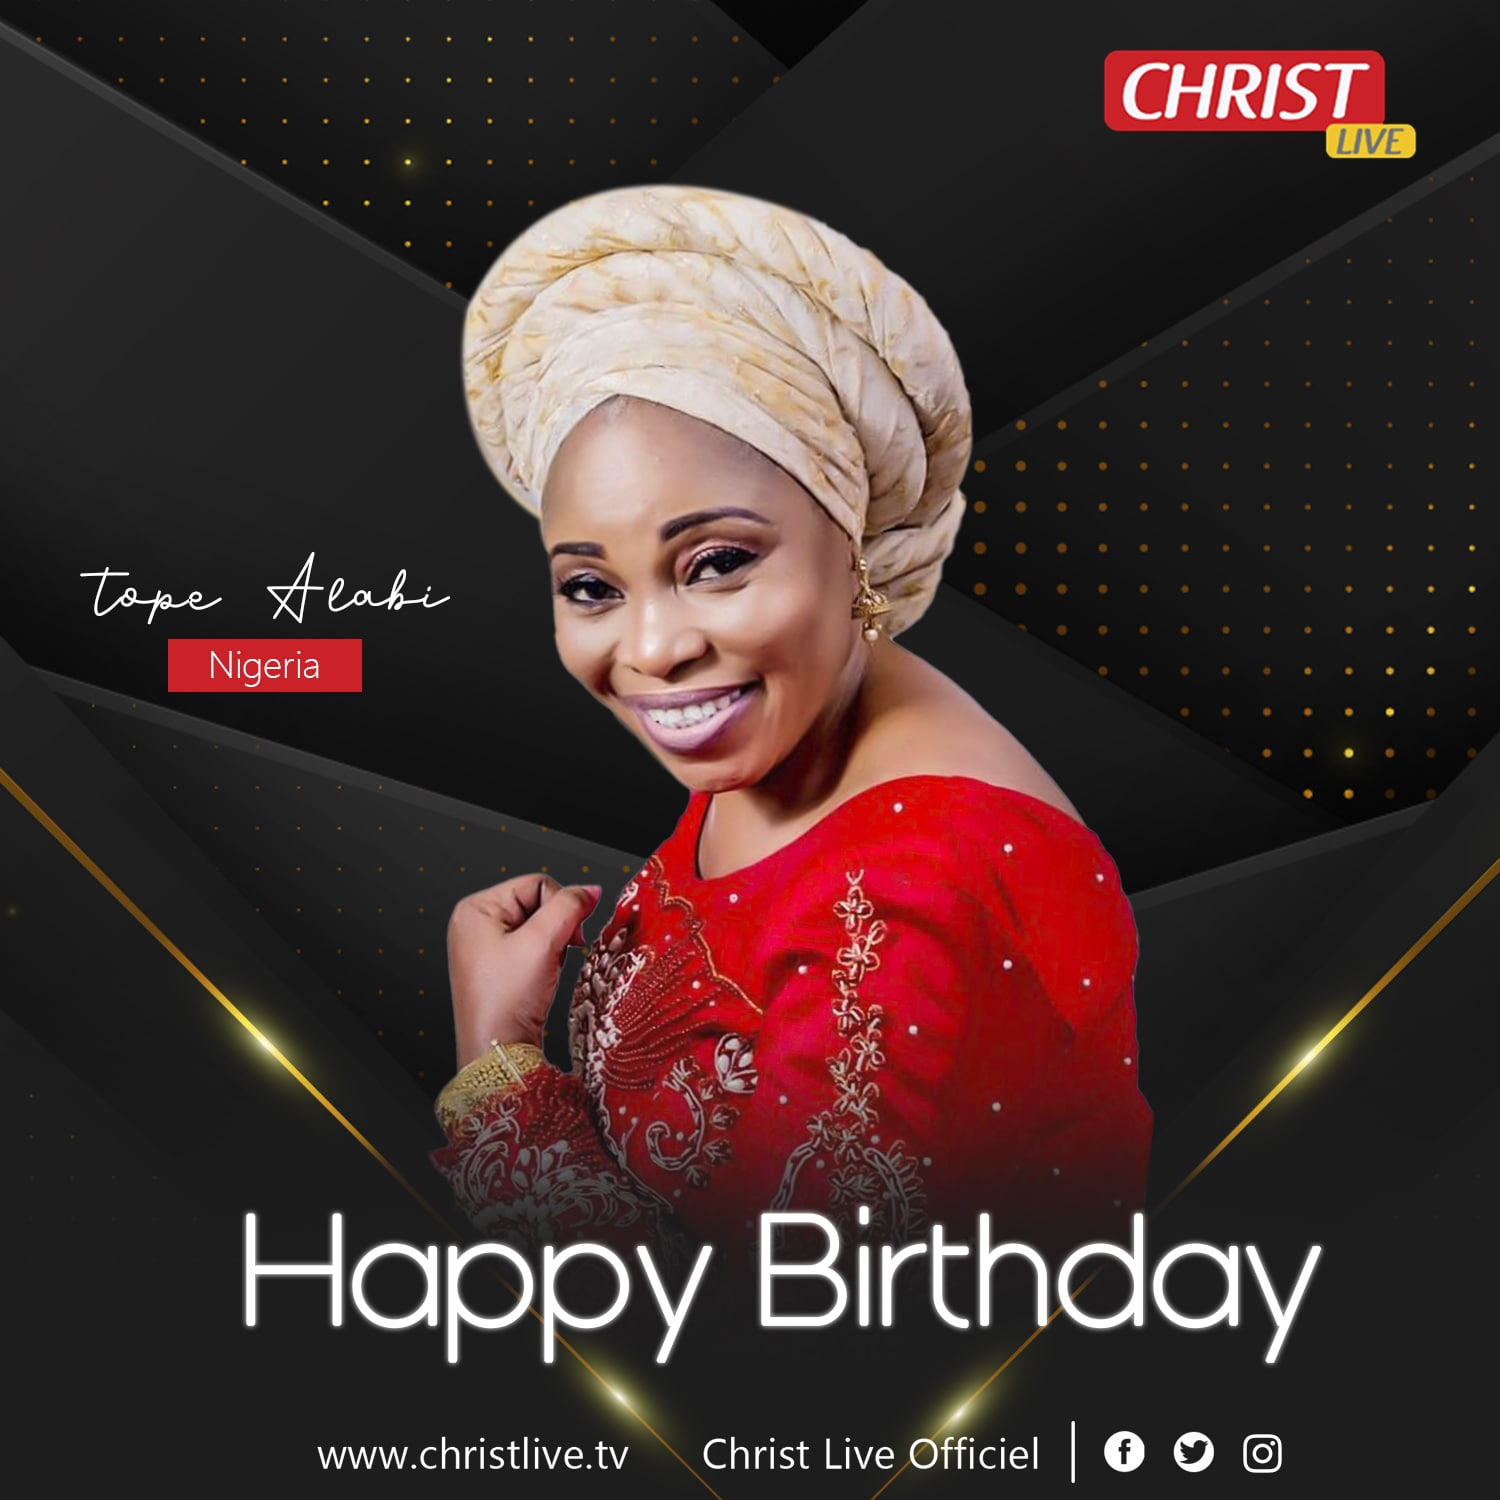 Happy birthday mama Tope Alabi.